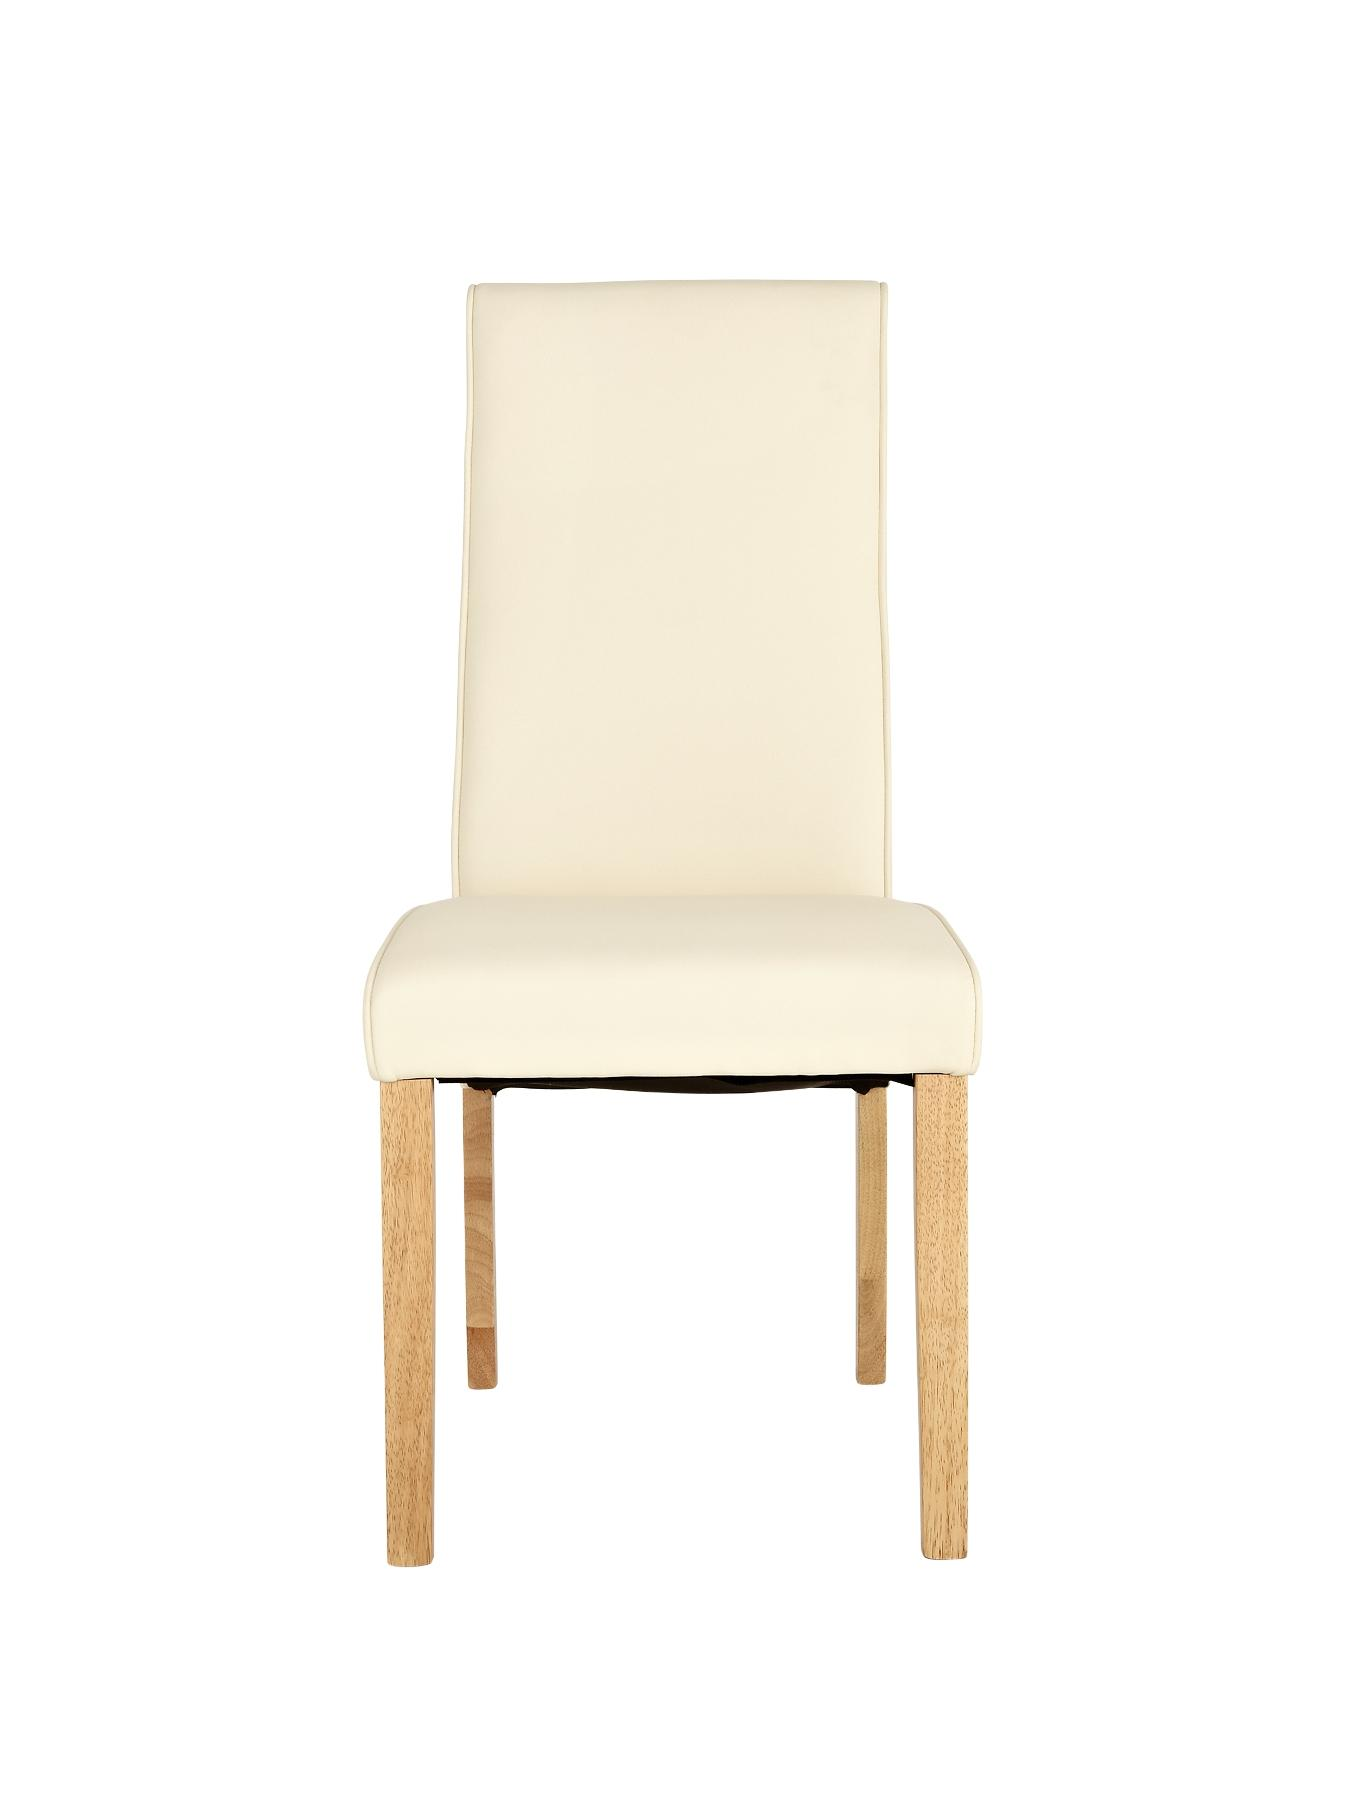 Buckingham Set of 2 Dining Chairs, Cream,Brown